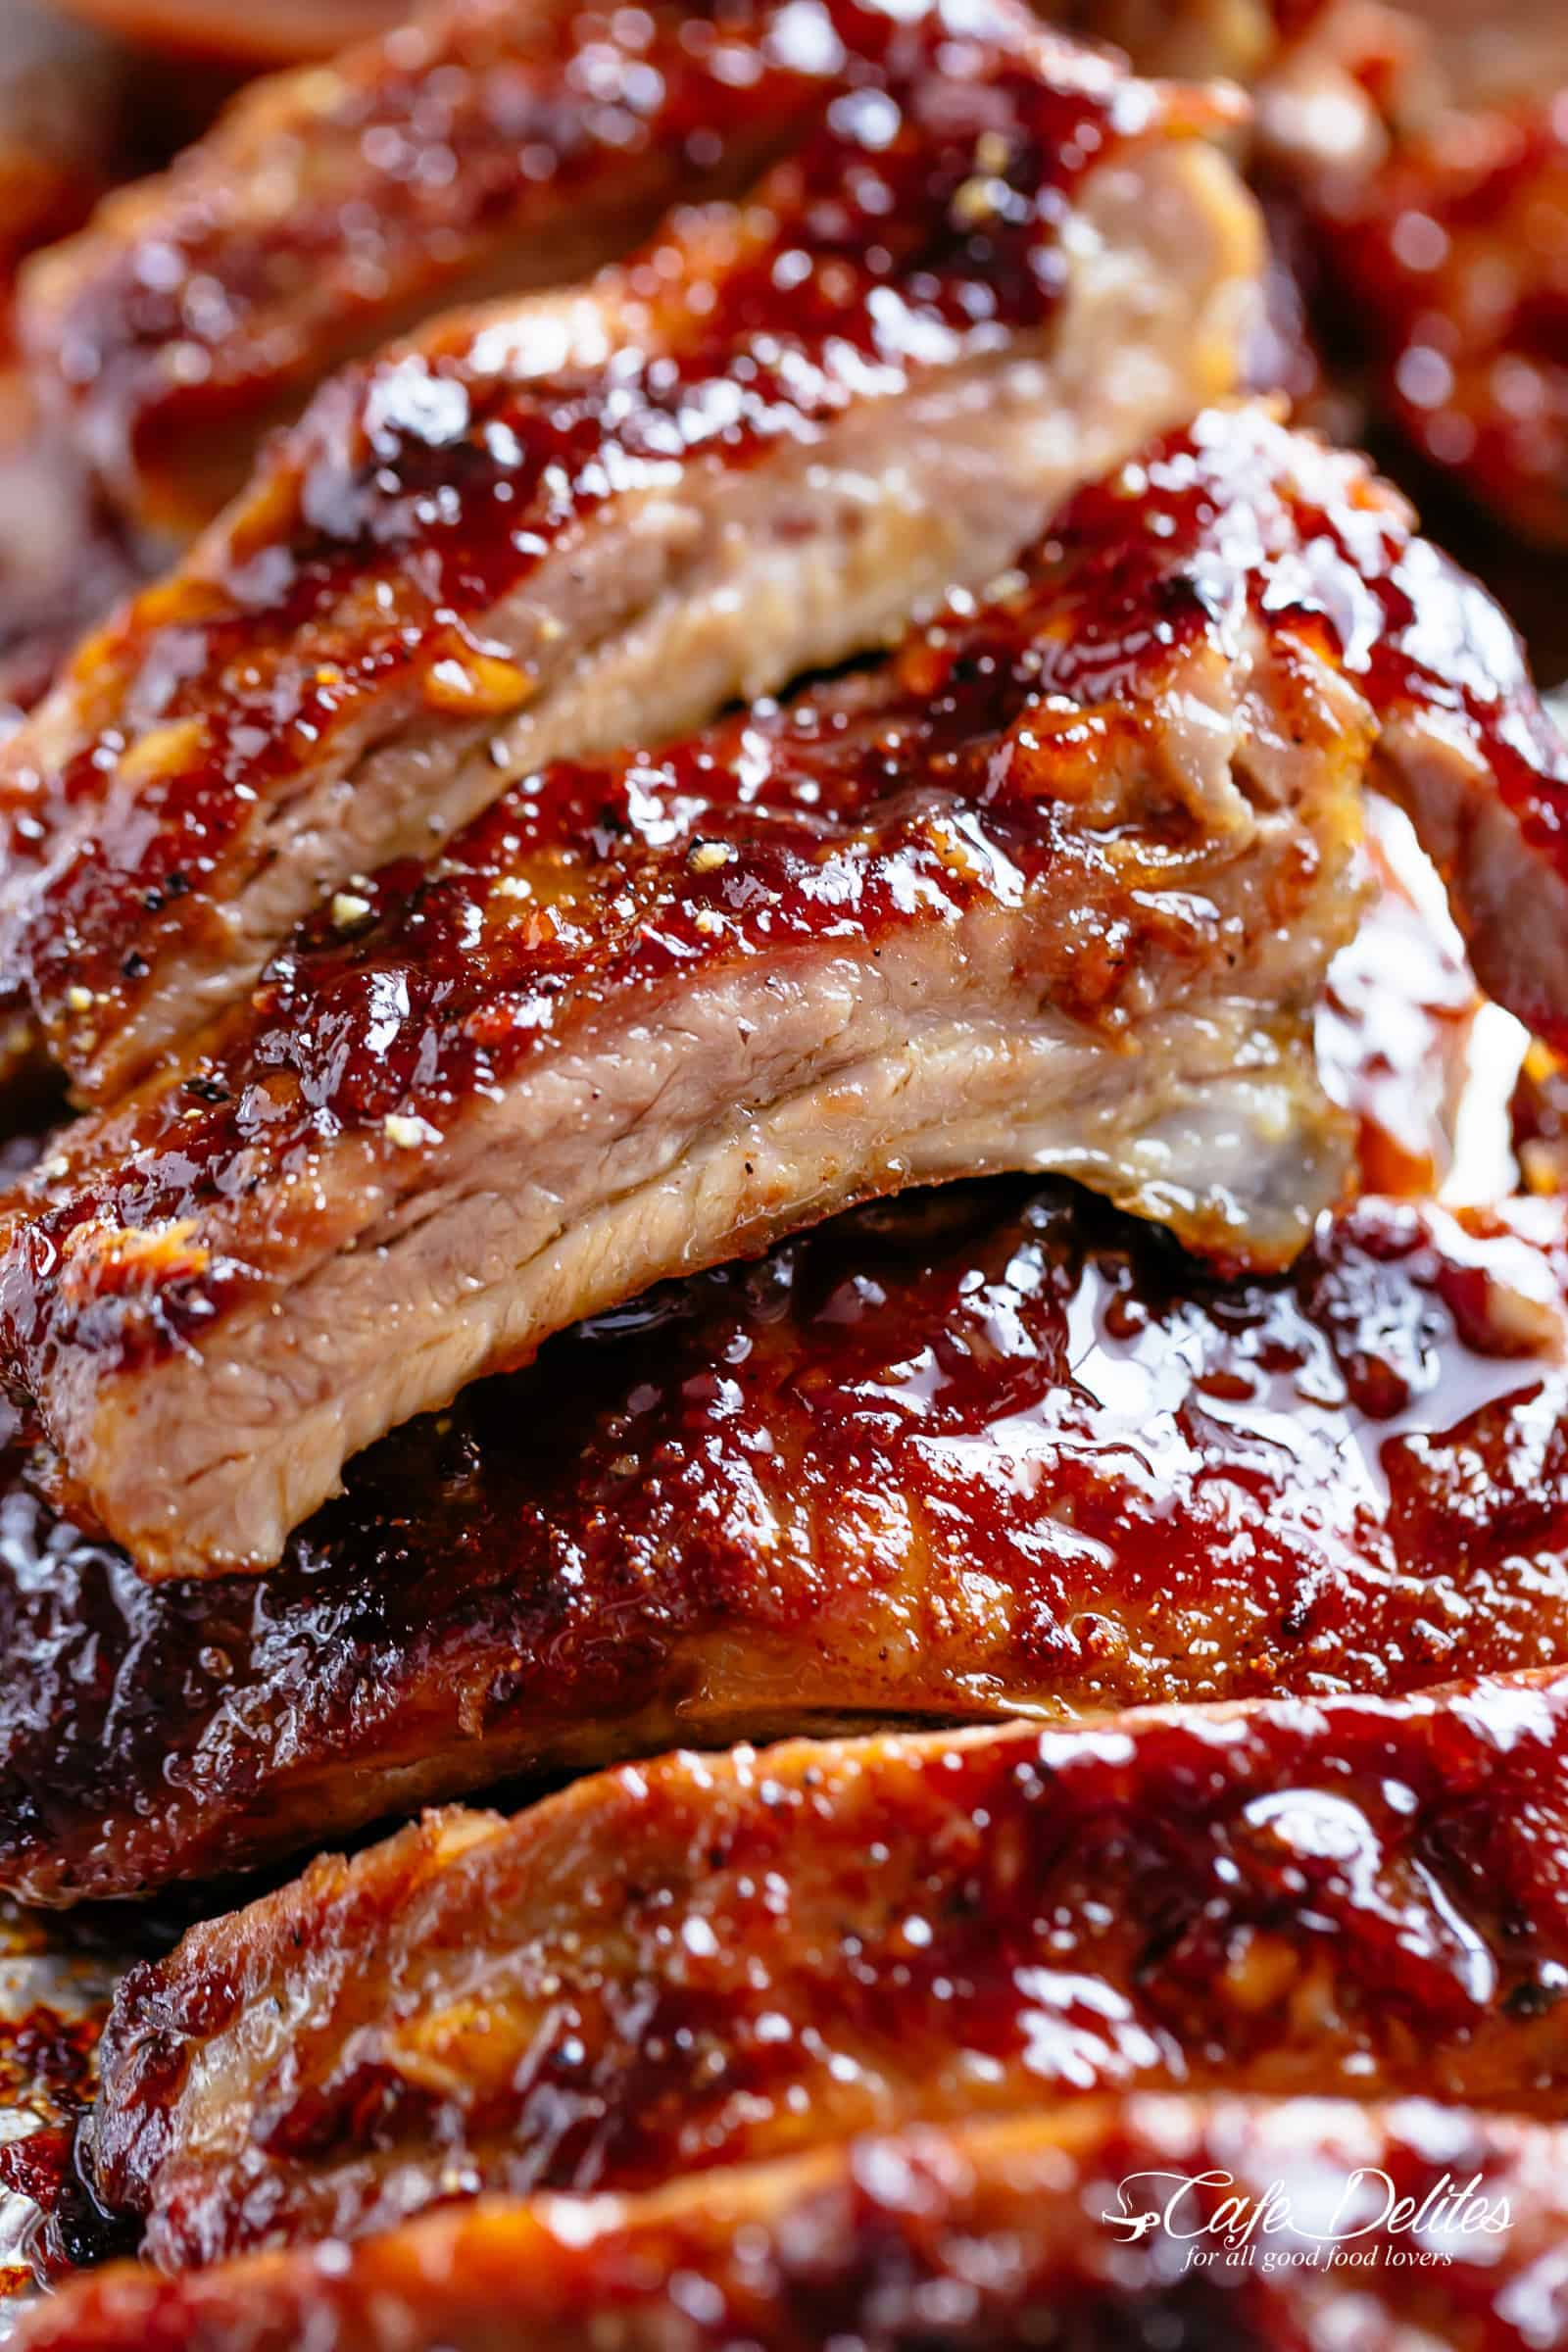 Comely Juicy Barbecue Ribs Oven Sticky Oven Barbecue Ribs Cafe Delites Pork Rib Marinade Dr Pepper Pork Rib Marinade Nz nice food Pork Rib Marinade